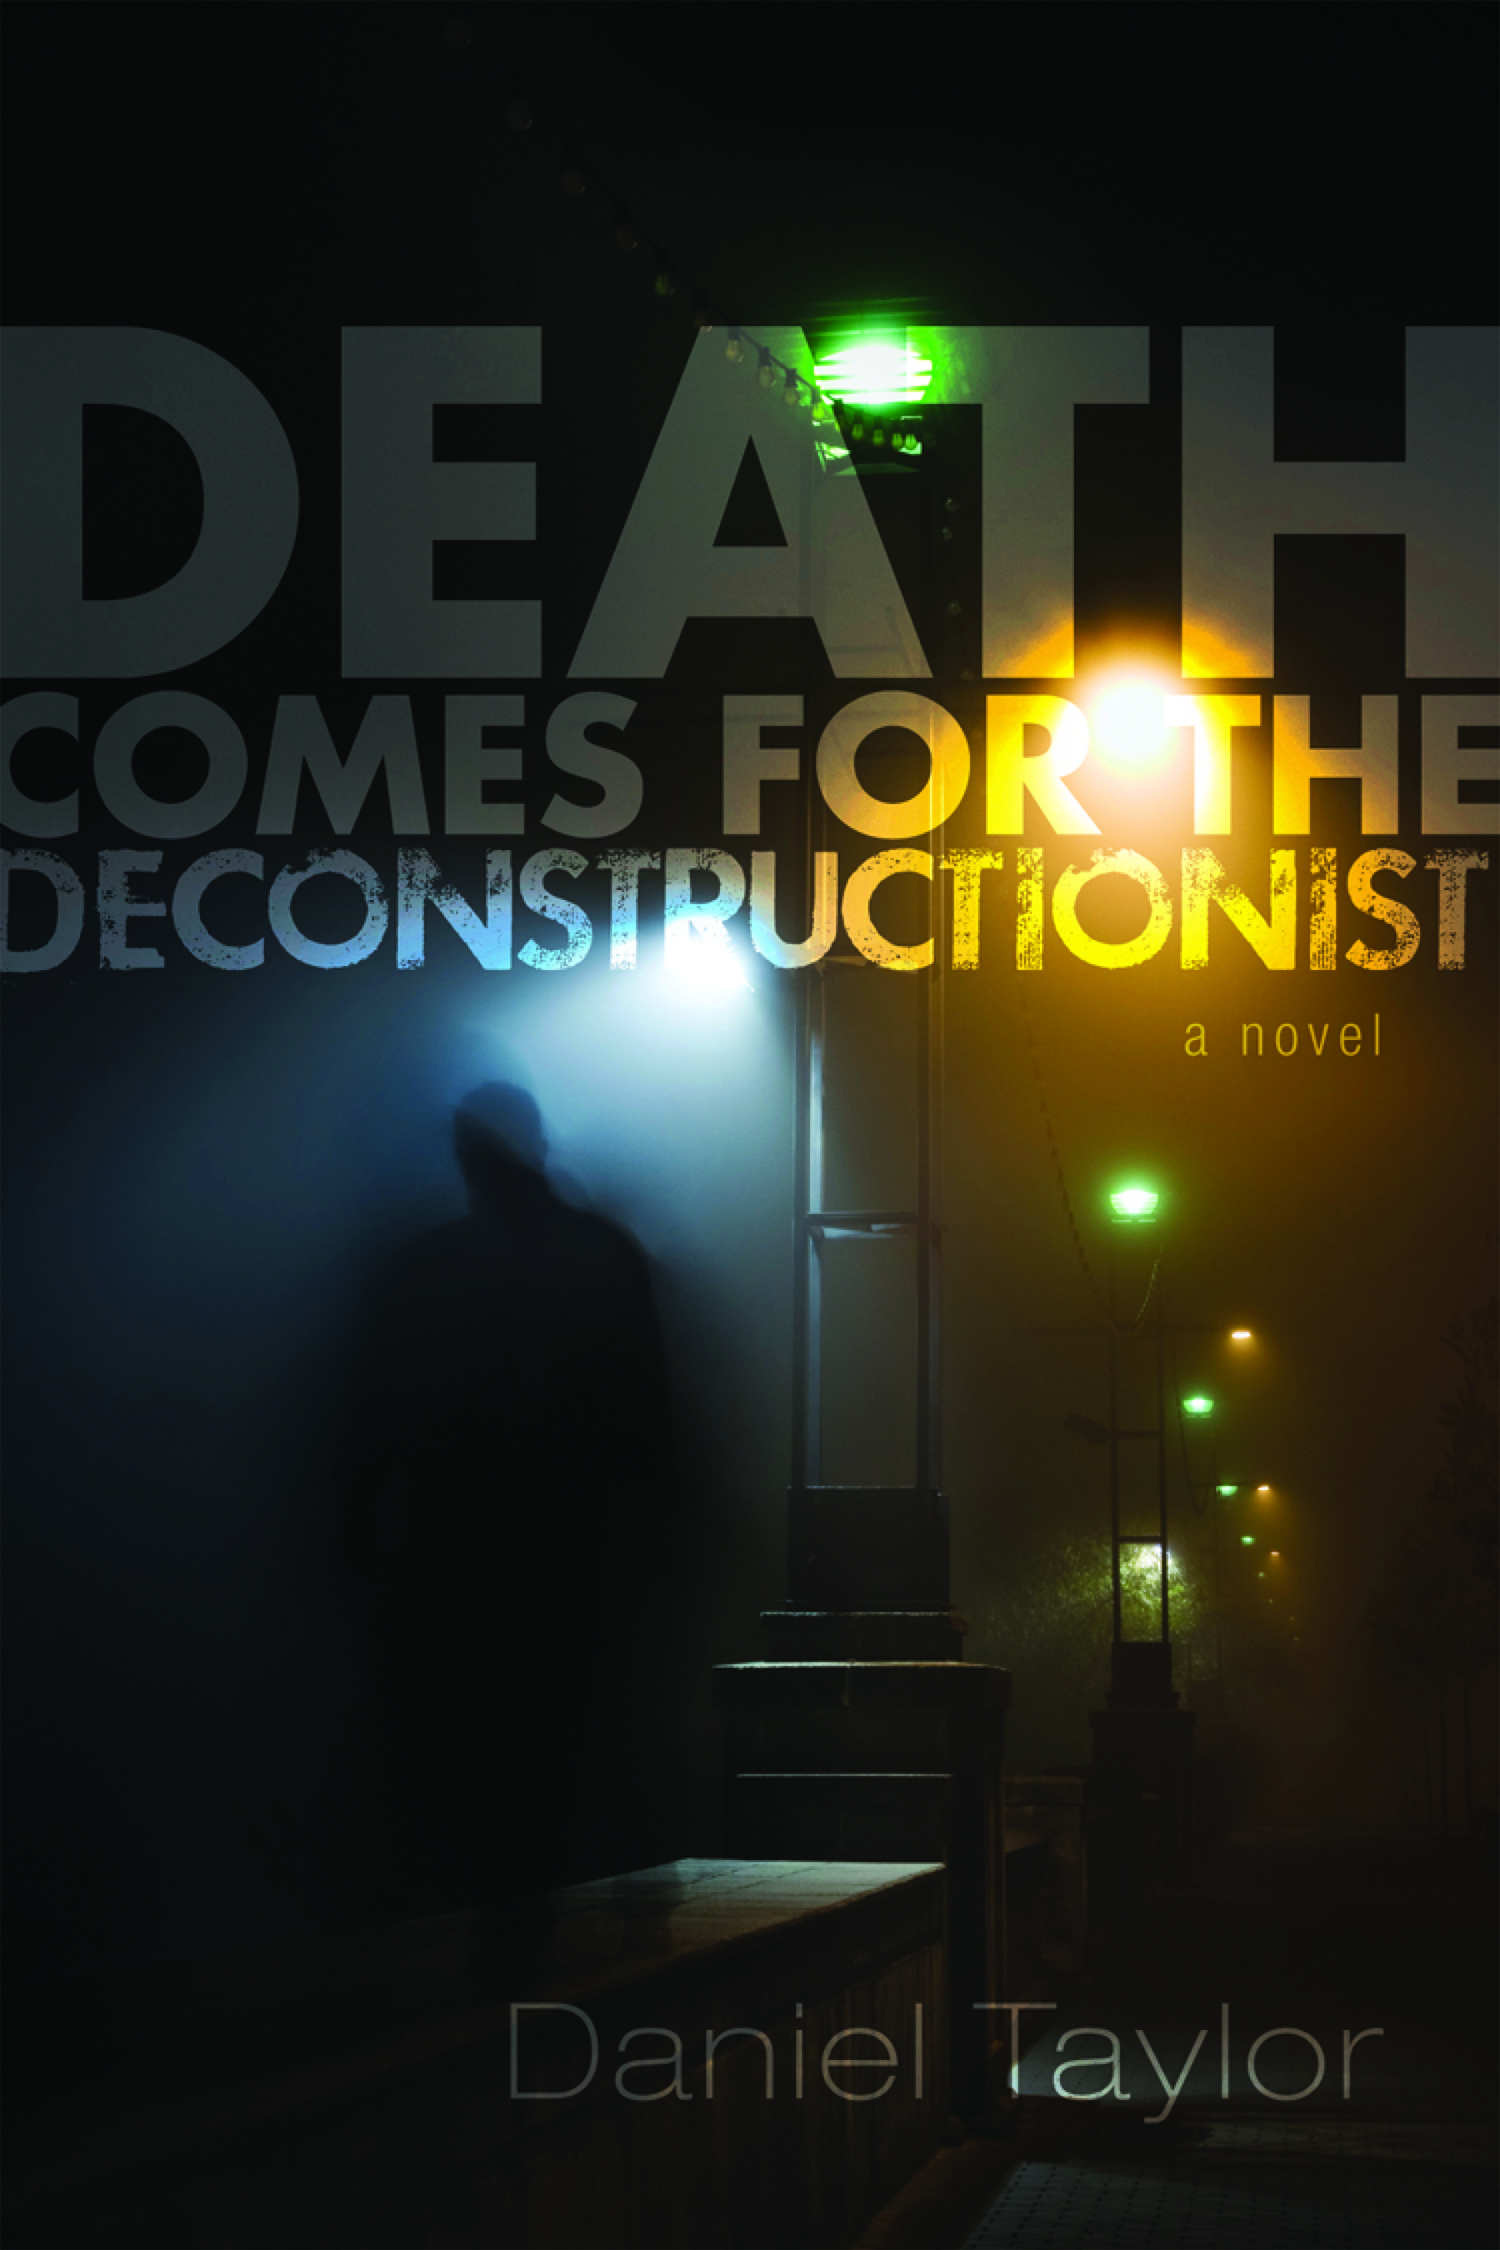 Death-Comes-for-the-Deconstructionist-Dan-Taylor.jpg